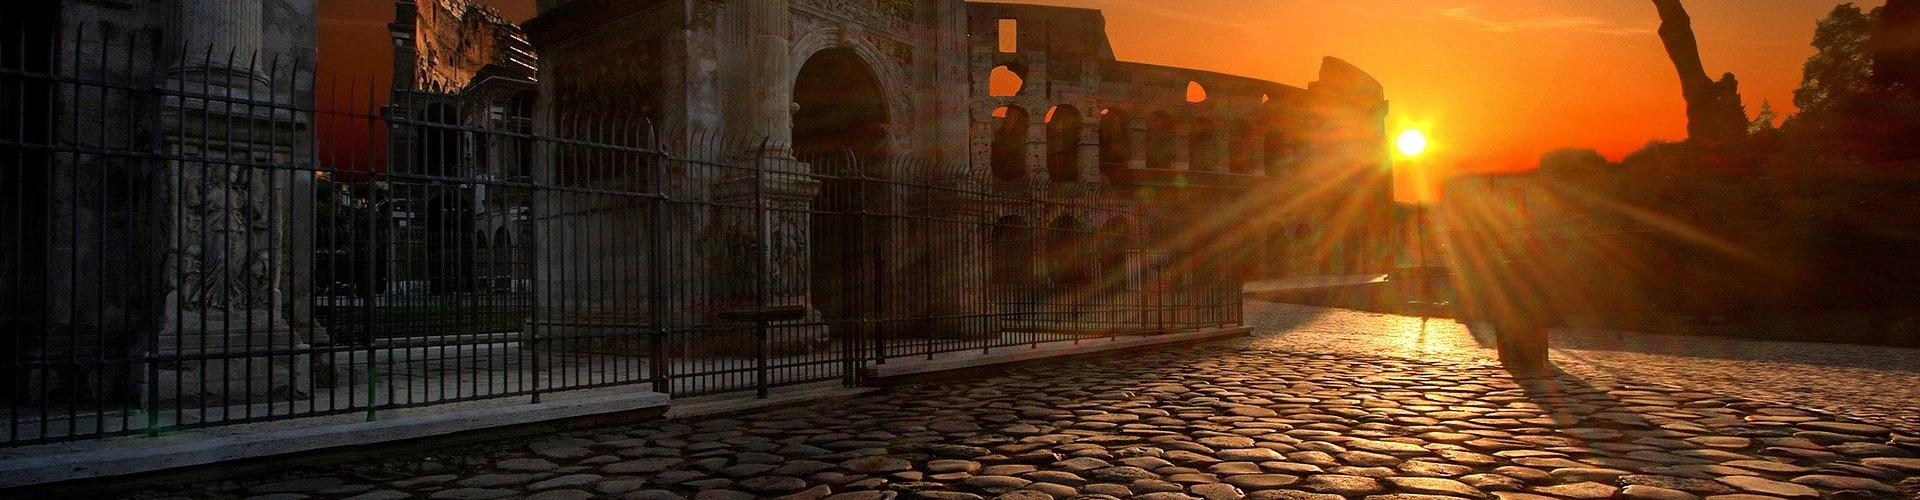 arch-of-constantine-3044634_19201